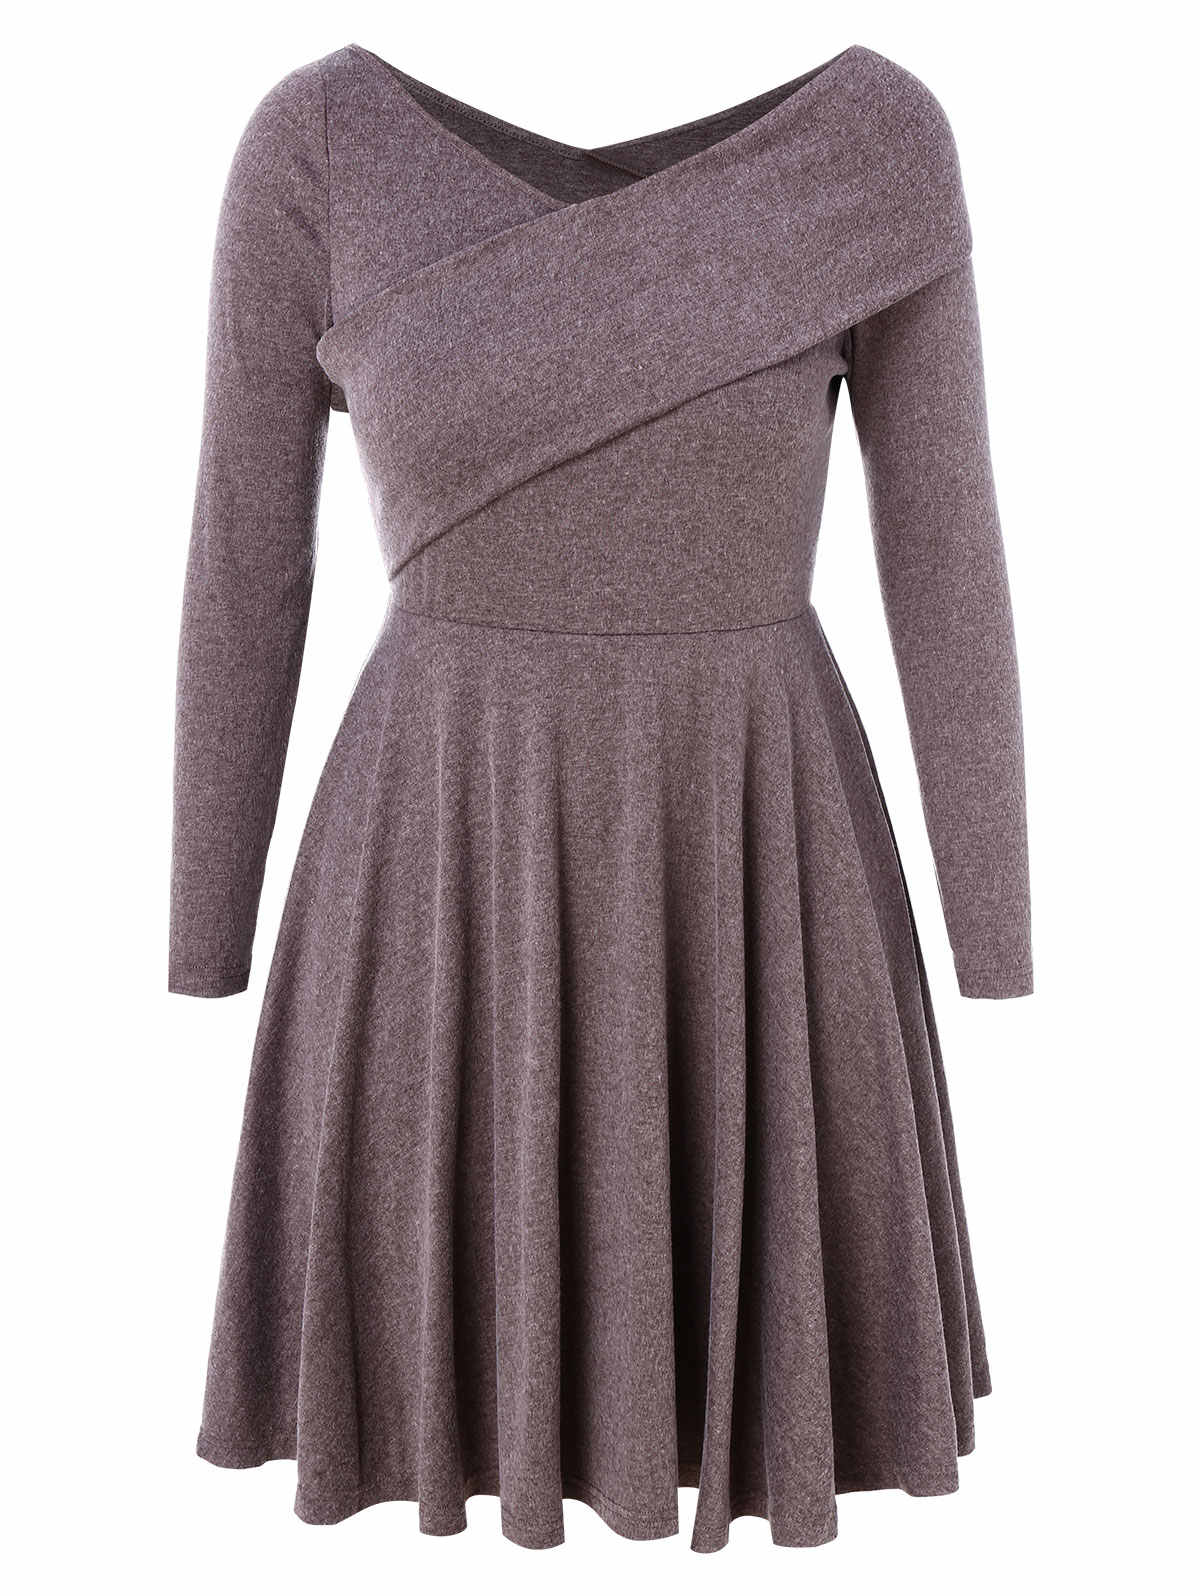 Wipalo Women Plus Size Embellished Fit And Flare Skater Dress V Neck Long  Sleeves Casual Solid Knit Dress Spring Ladies Vestidos